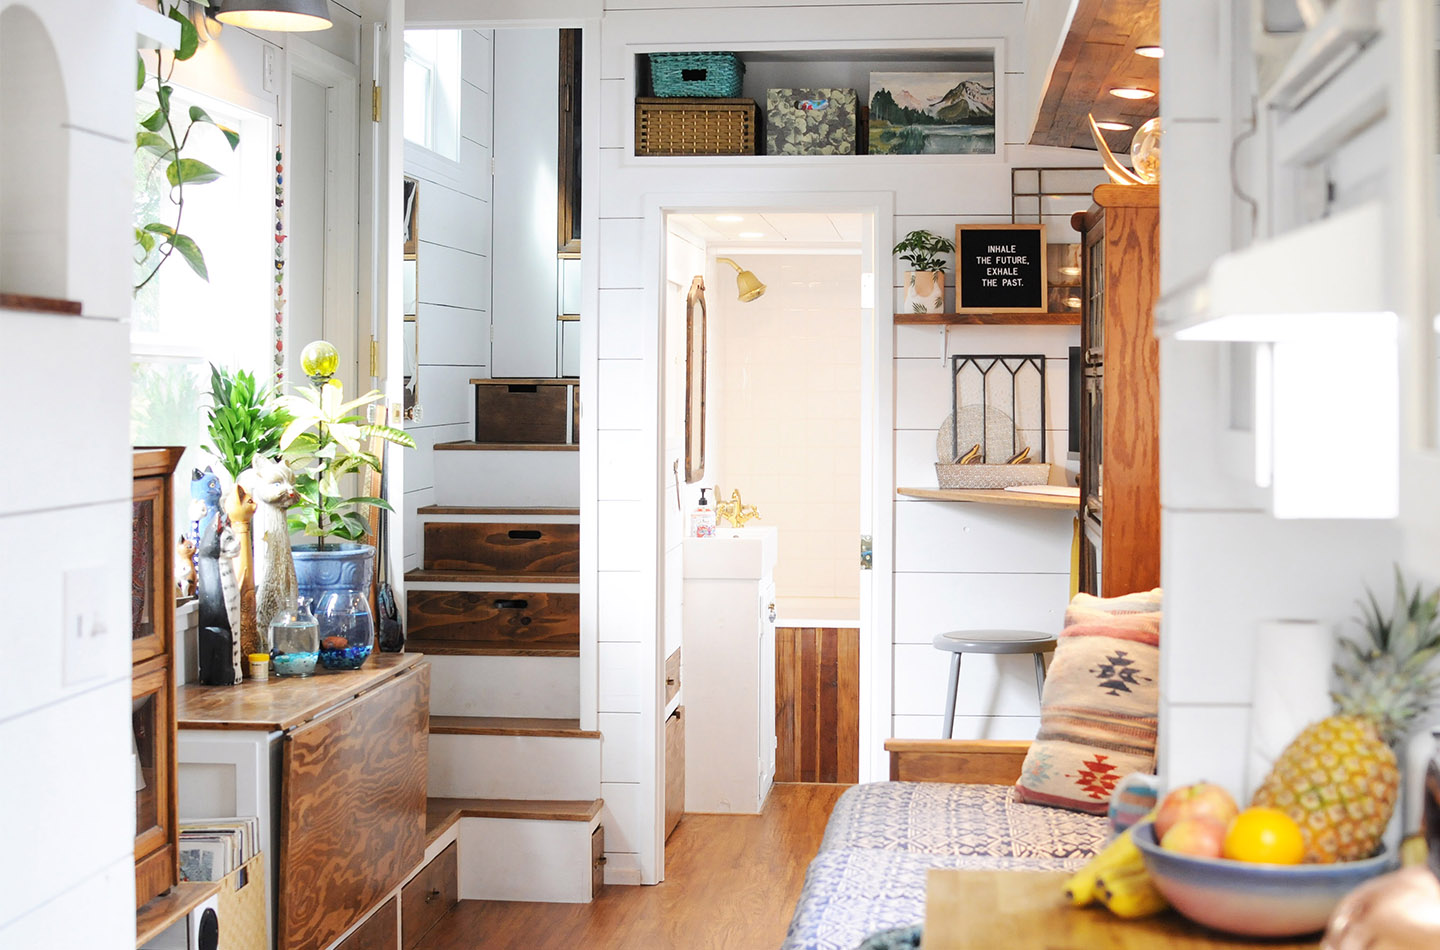 Self Built Two Bedroom Tiny House In California